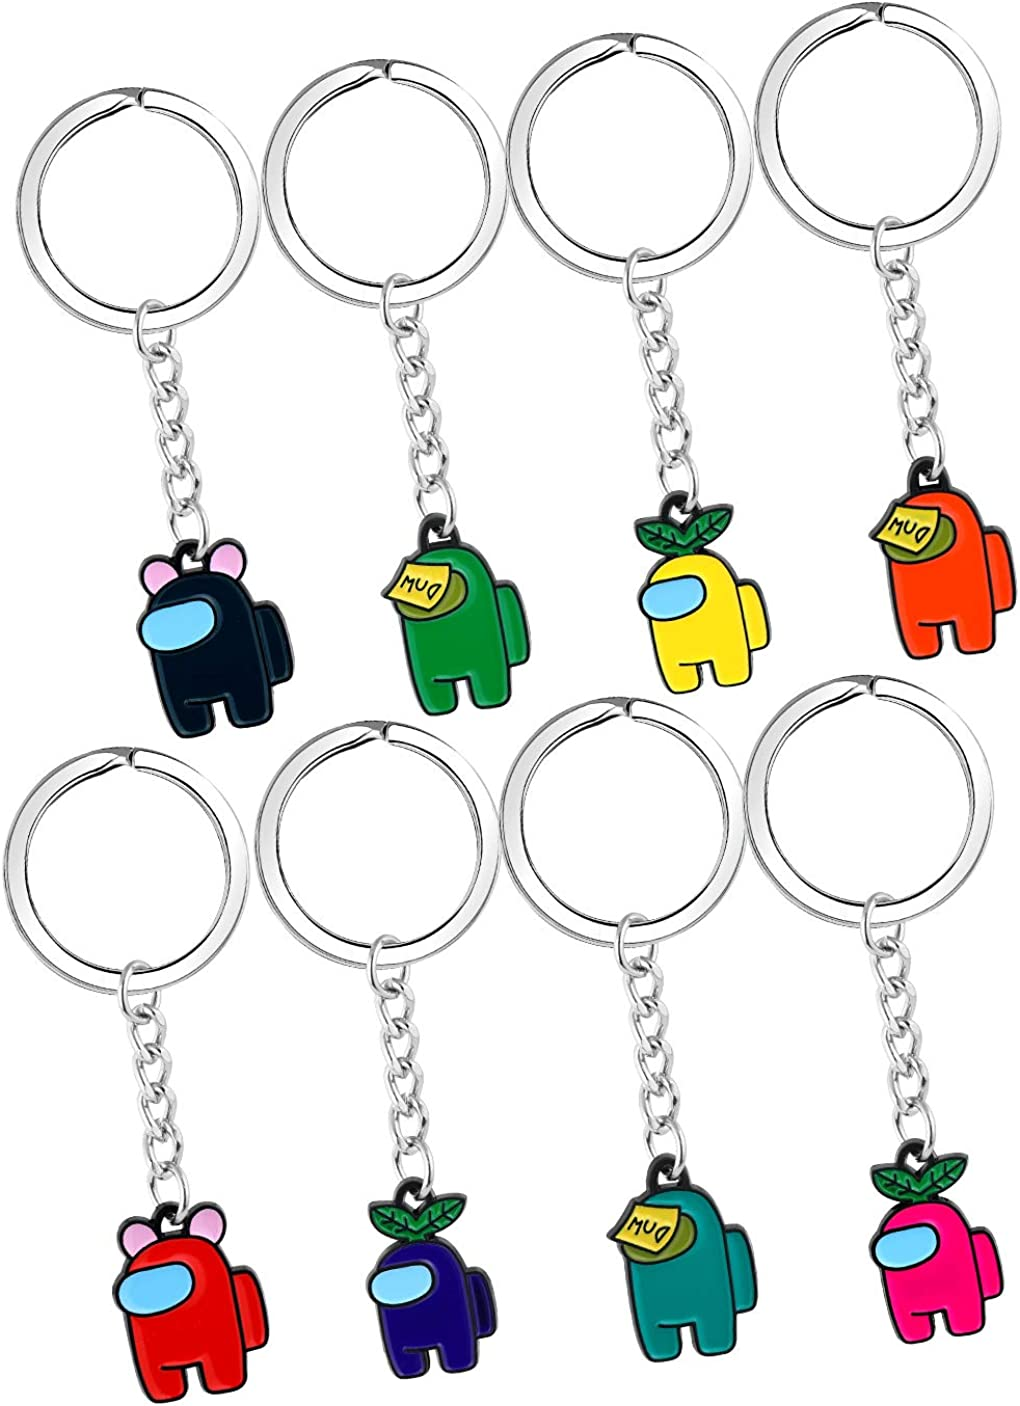 4 pcs Among Us Keychain Crewmate Among Us Fans Keychains Set Toys Funny Rubber Among Us Keyrings Gifts